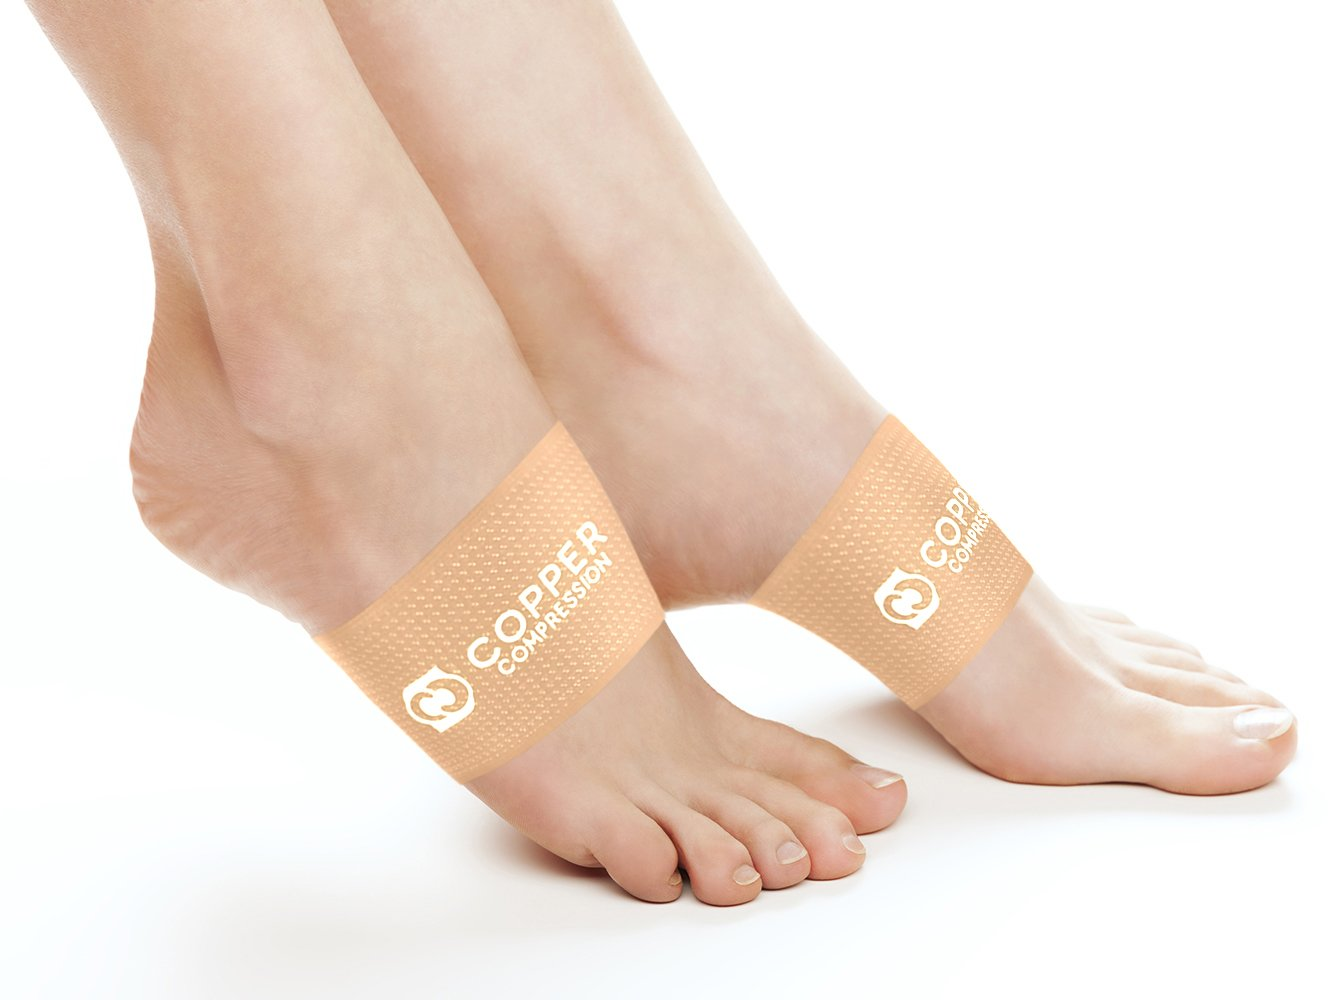 Copper Compression Copper Arch Support - 2 Plantar Fasciitis Braces / Sleeves. GUARANTEED Highest Copper Content. Foot Care, Heel Spurs, Feet Pain, Flat Arches (1 PAIR Nude Color - One Size Fits All)